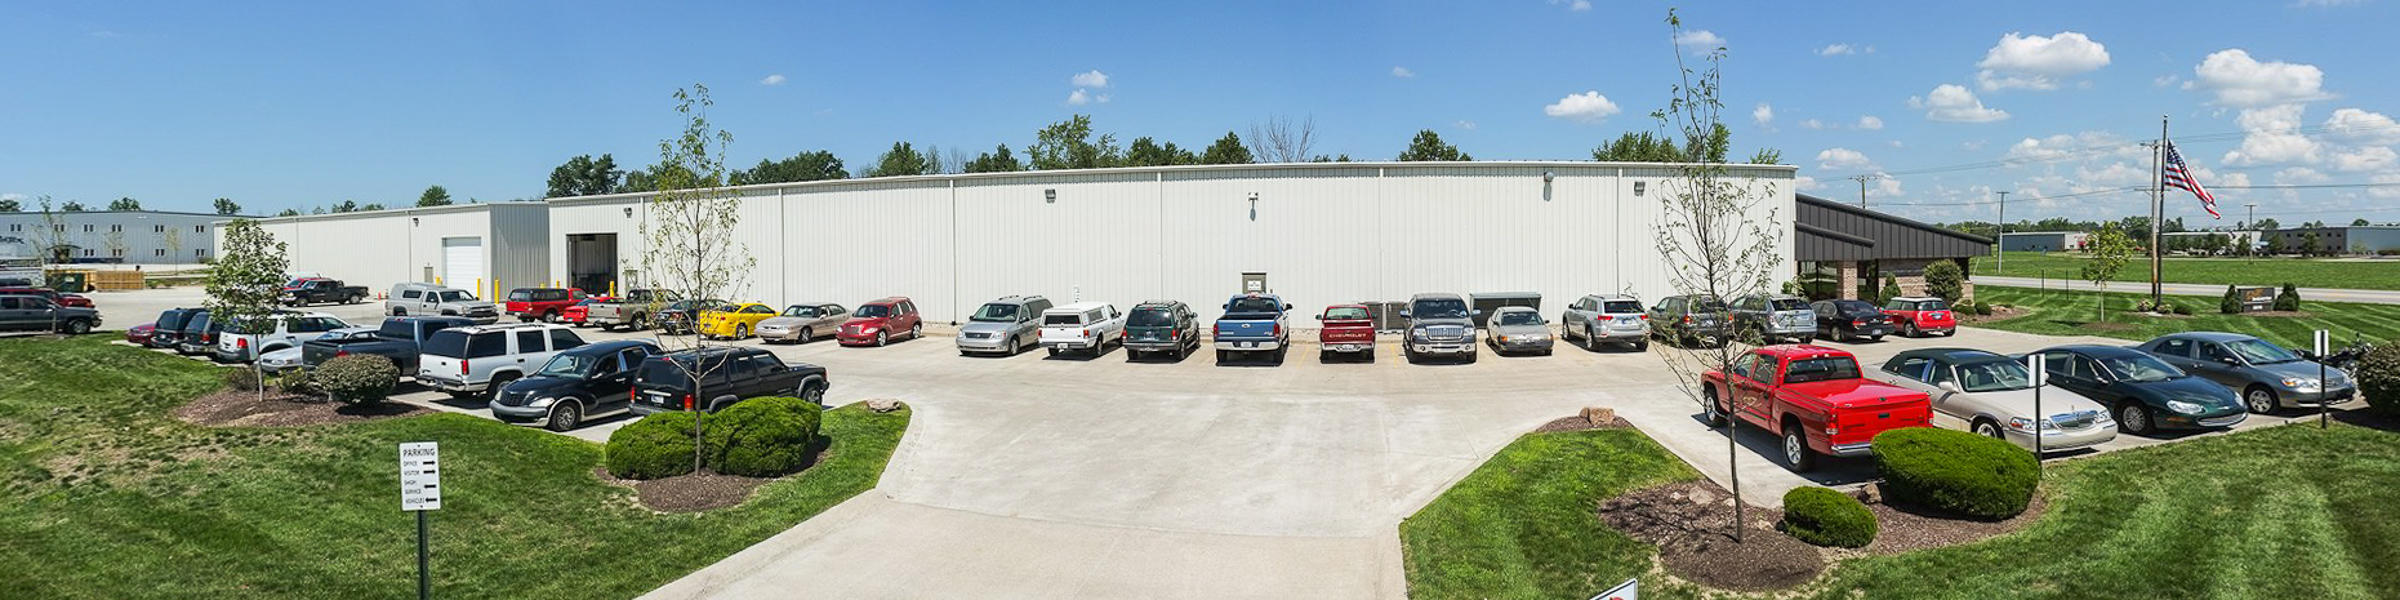 CNC Industries expansion exterior pano